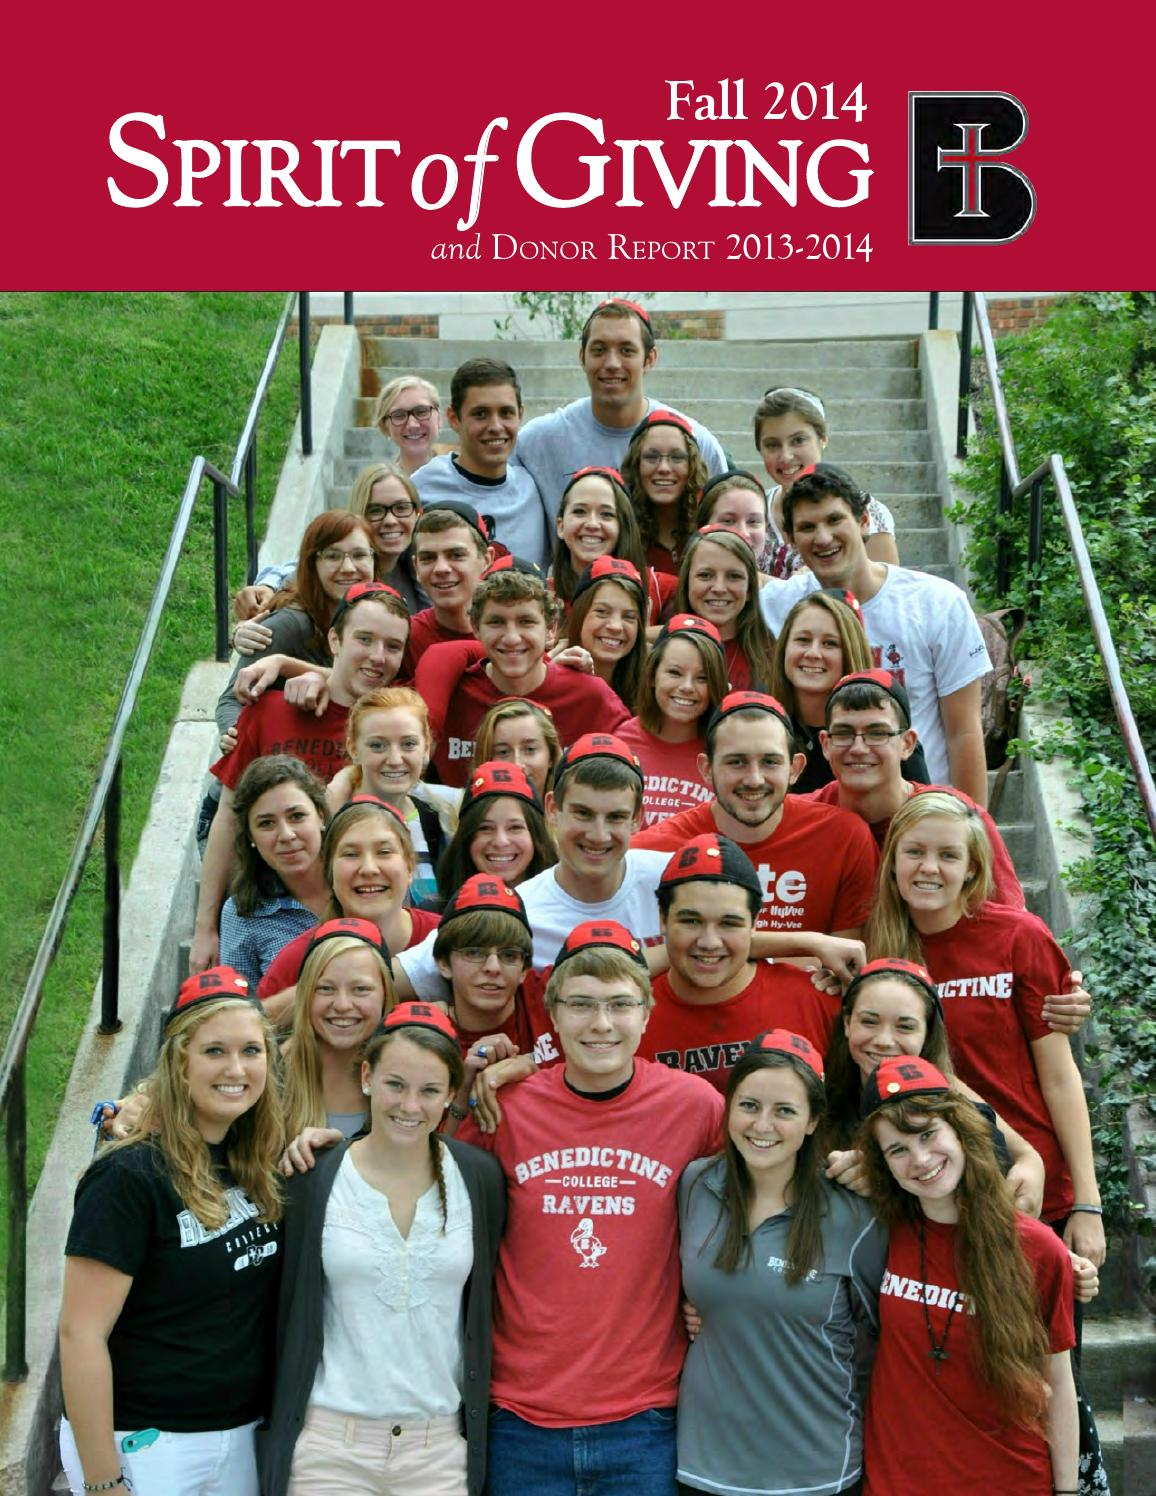 Sprit of giving fall 2014 by benedictine college issuu Siena medical clinic garden city kansas